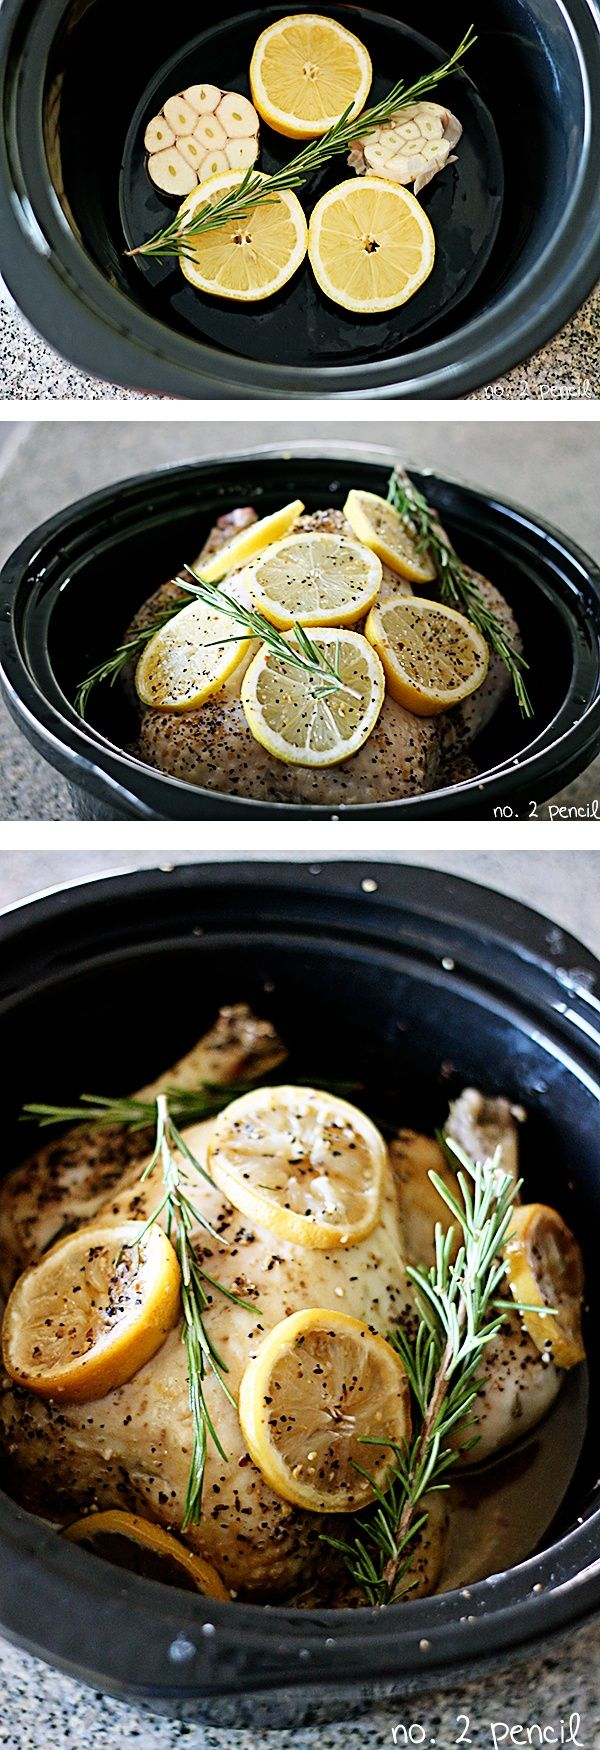 Wouldn't this be fabulous to come home to? Slow Cooker Lemon Garlic Chicken - 4 lemons, 2-3 heads of garlic, 1 whole chicken 4-5 lbs, fresh rosemary, or any fresh herbs,all-purpose steak seasoning or salt and pepper #crockpot